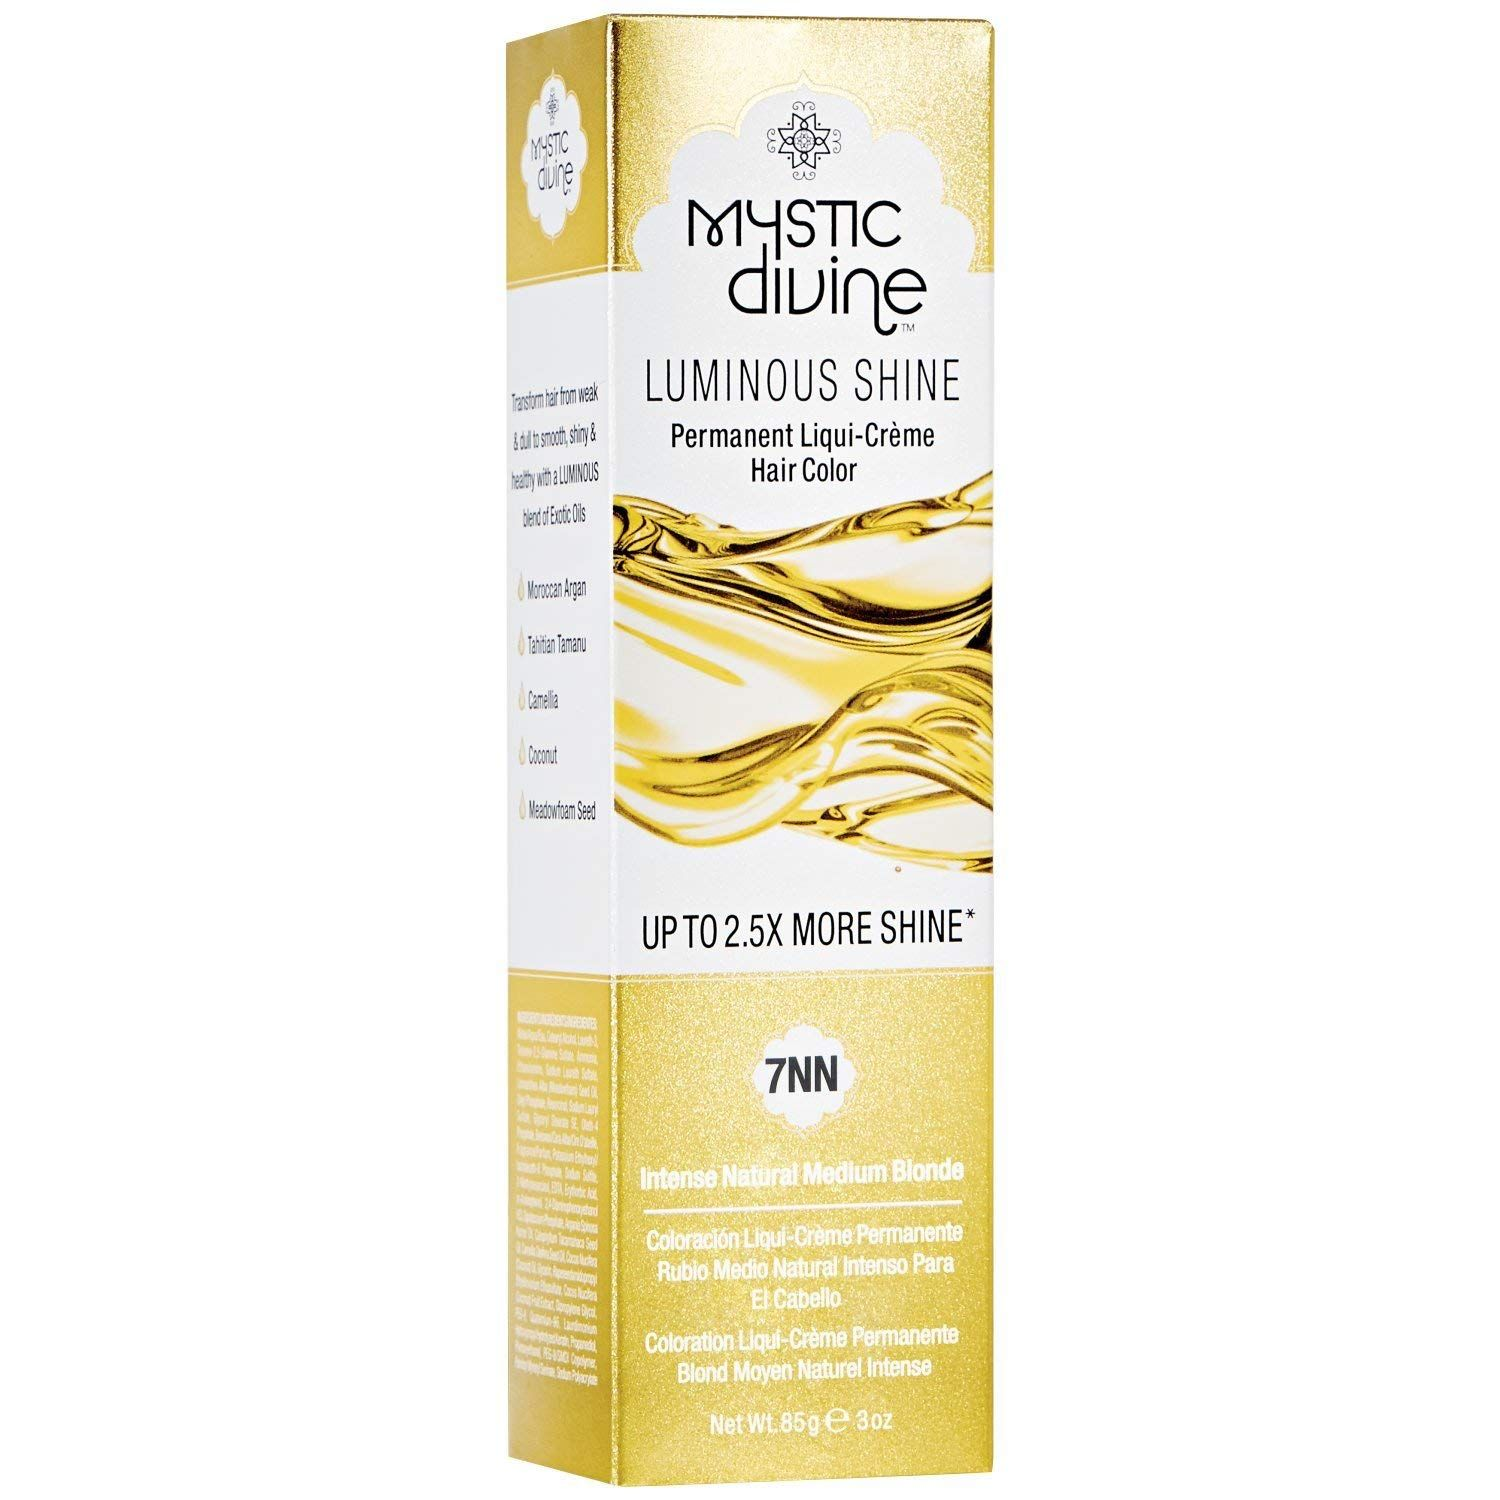 Mystic Divine 7NN Intense Medium Blonde Permanent Liqui